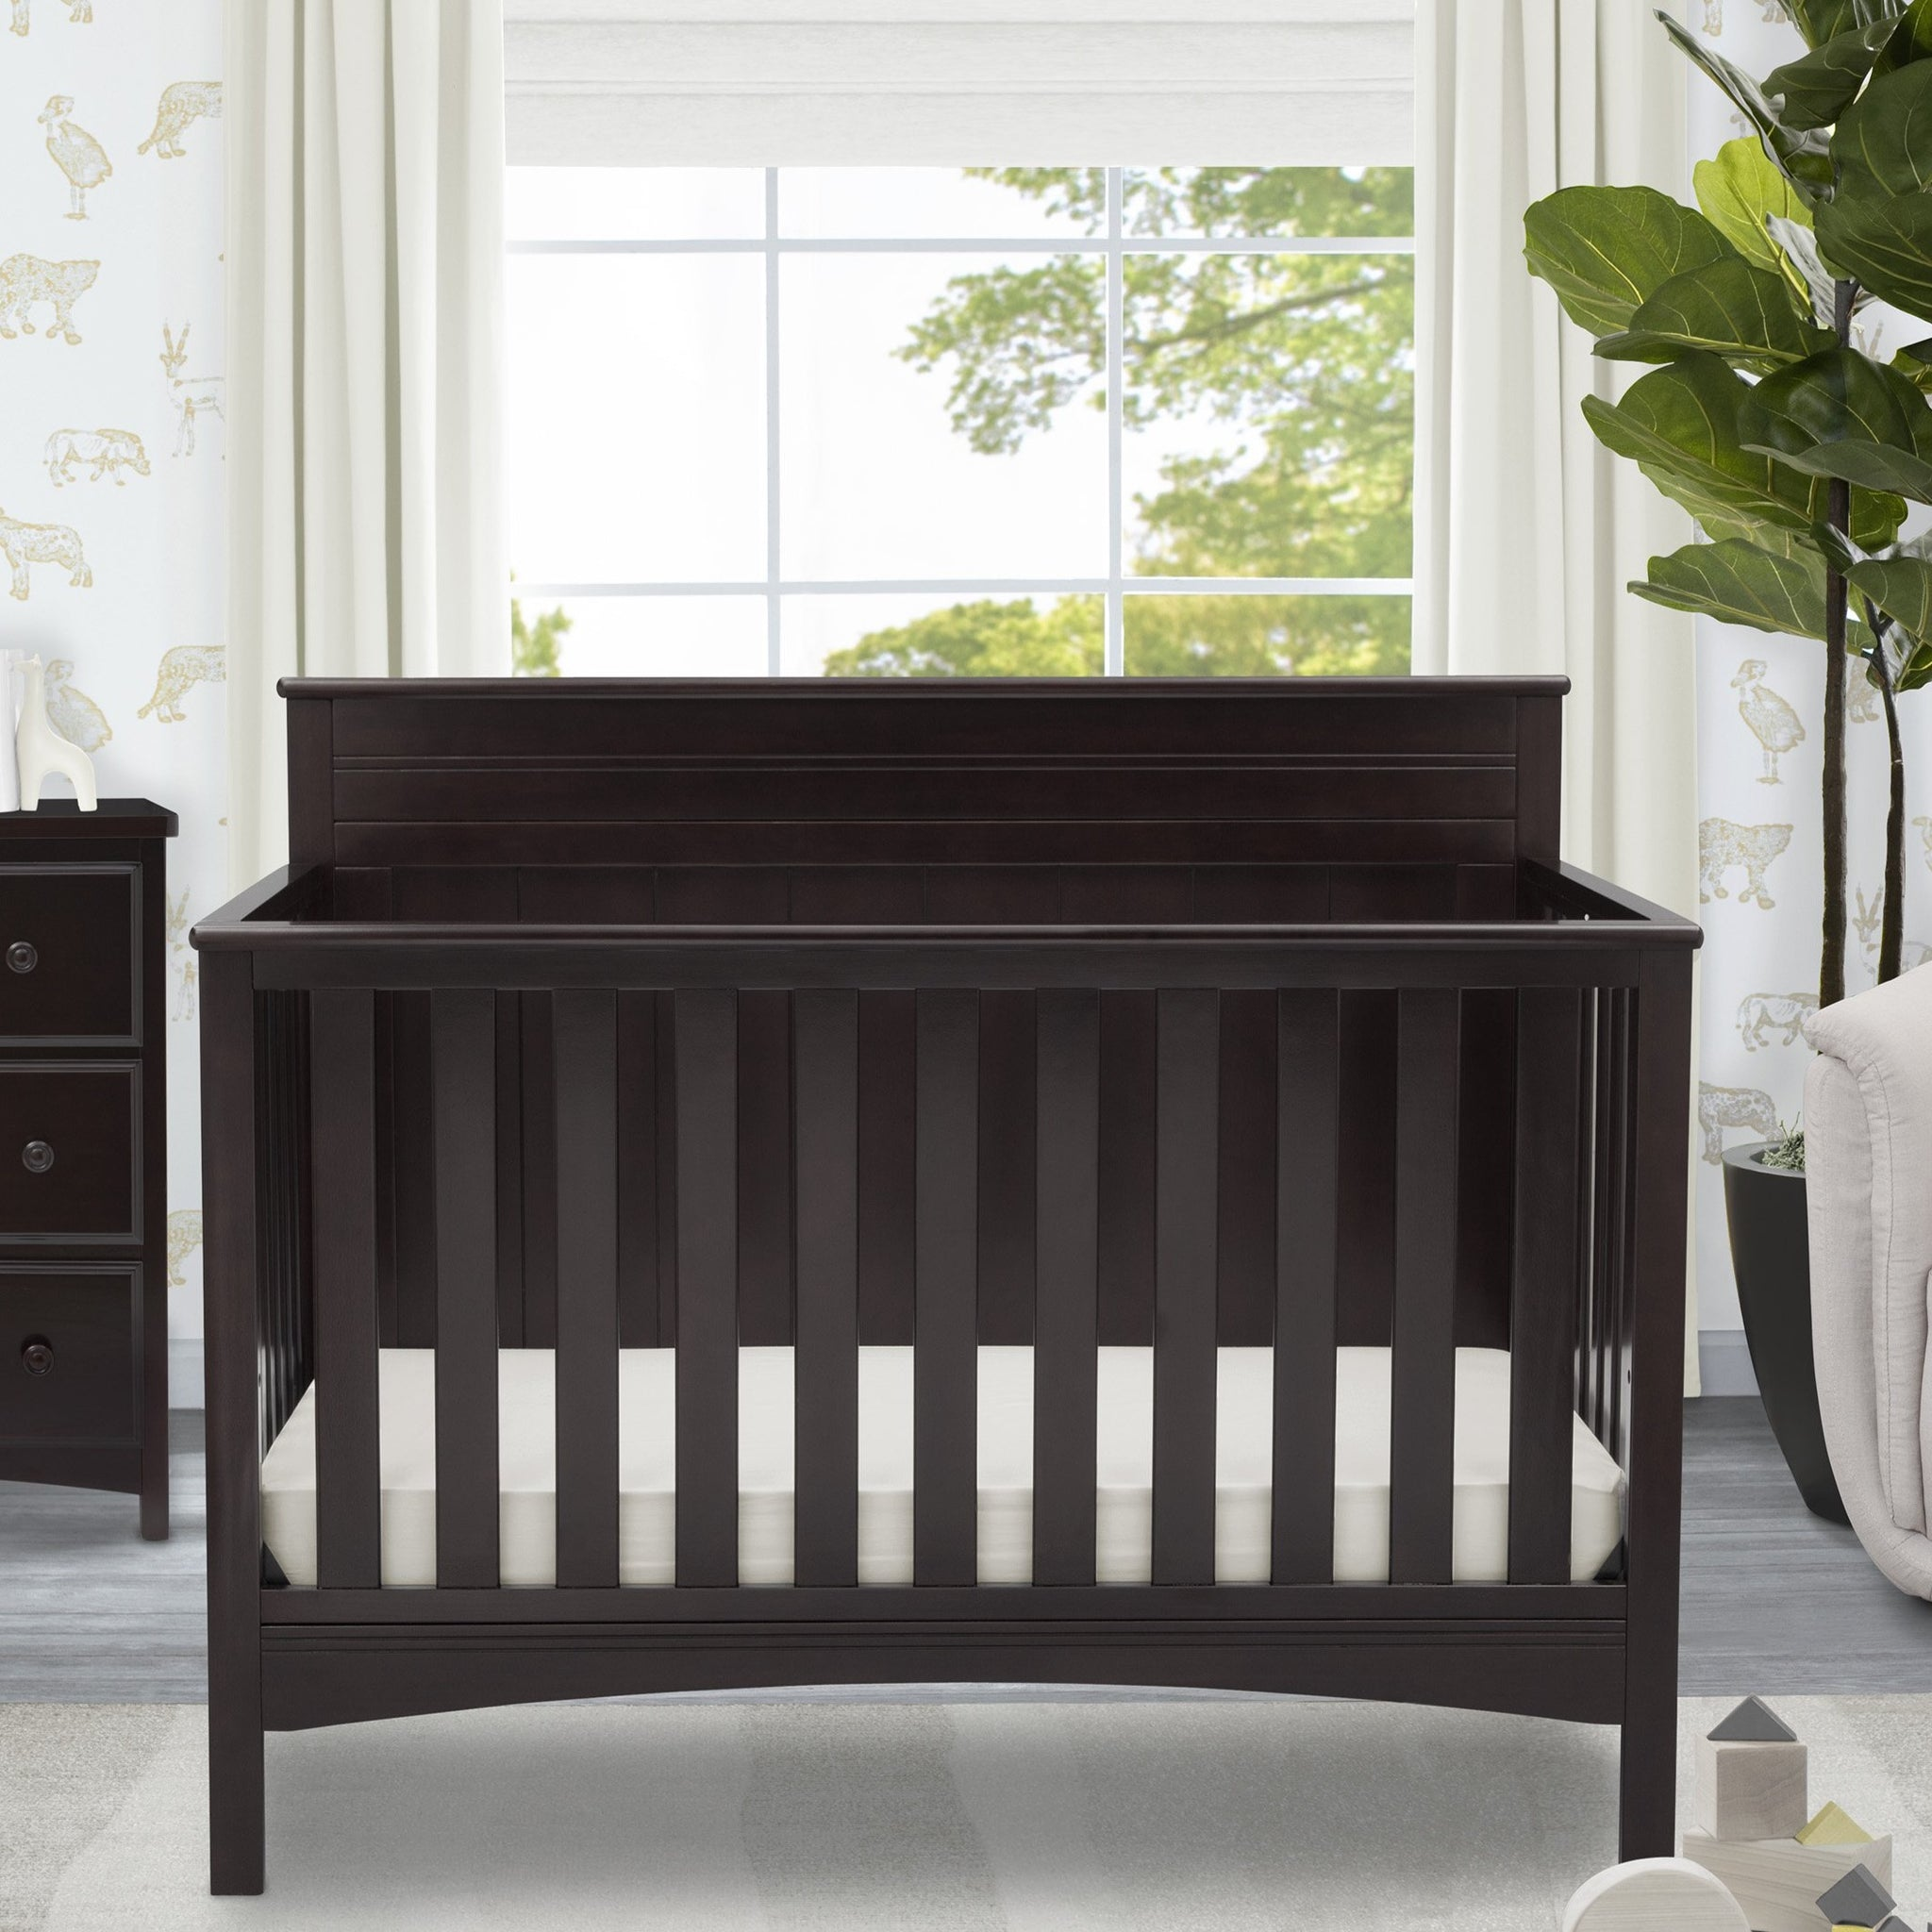 Fancy 4-in-1 Crib